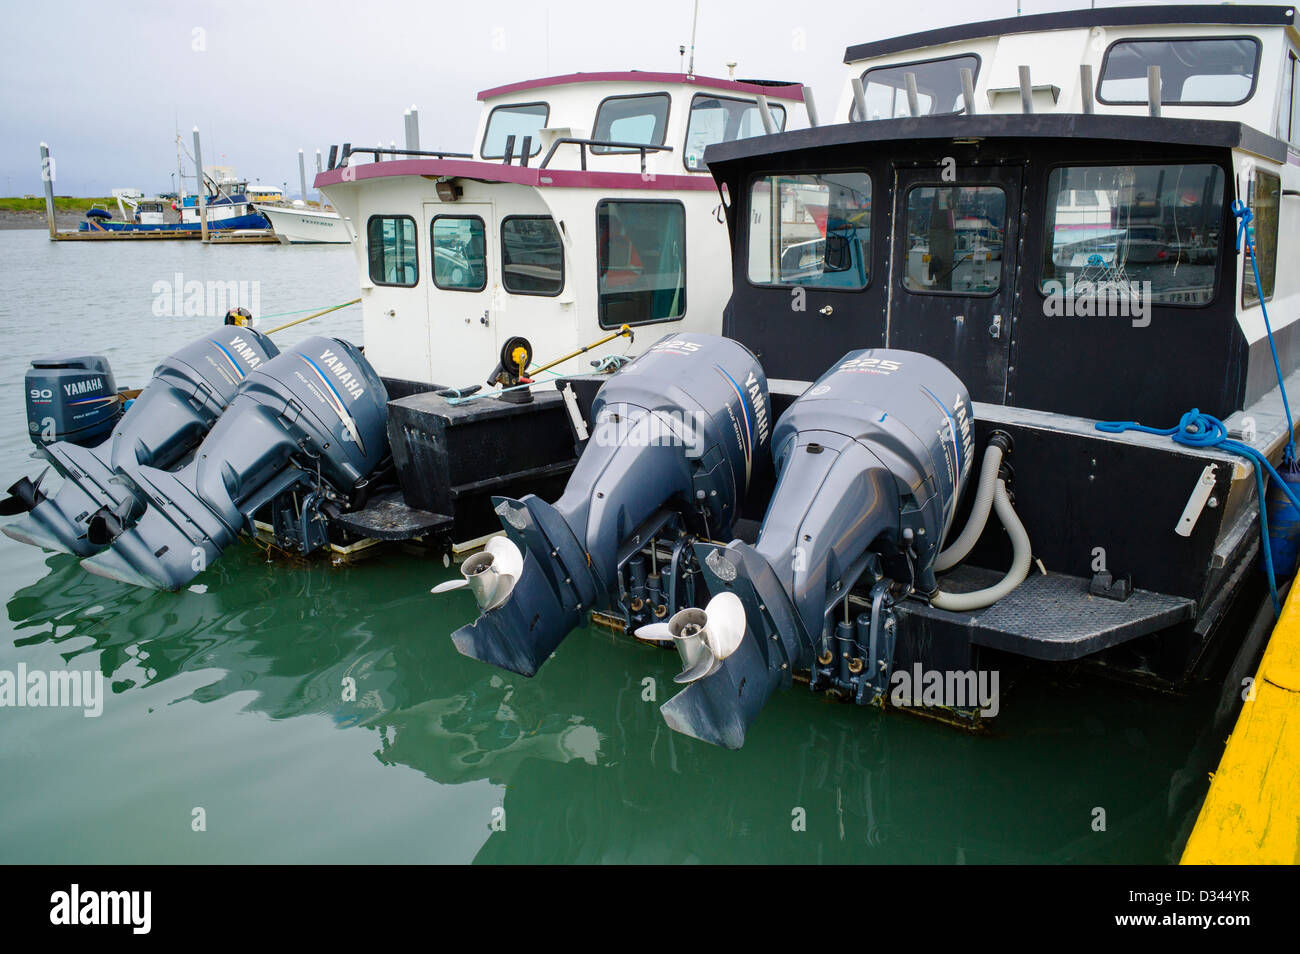 Charter and commercial fishing boats in the harbor, Homer, Alaska, USA. Large powerful outboard motors. - Stock Image